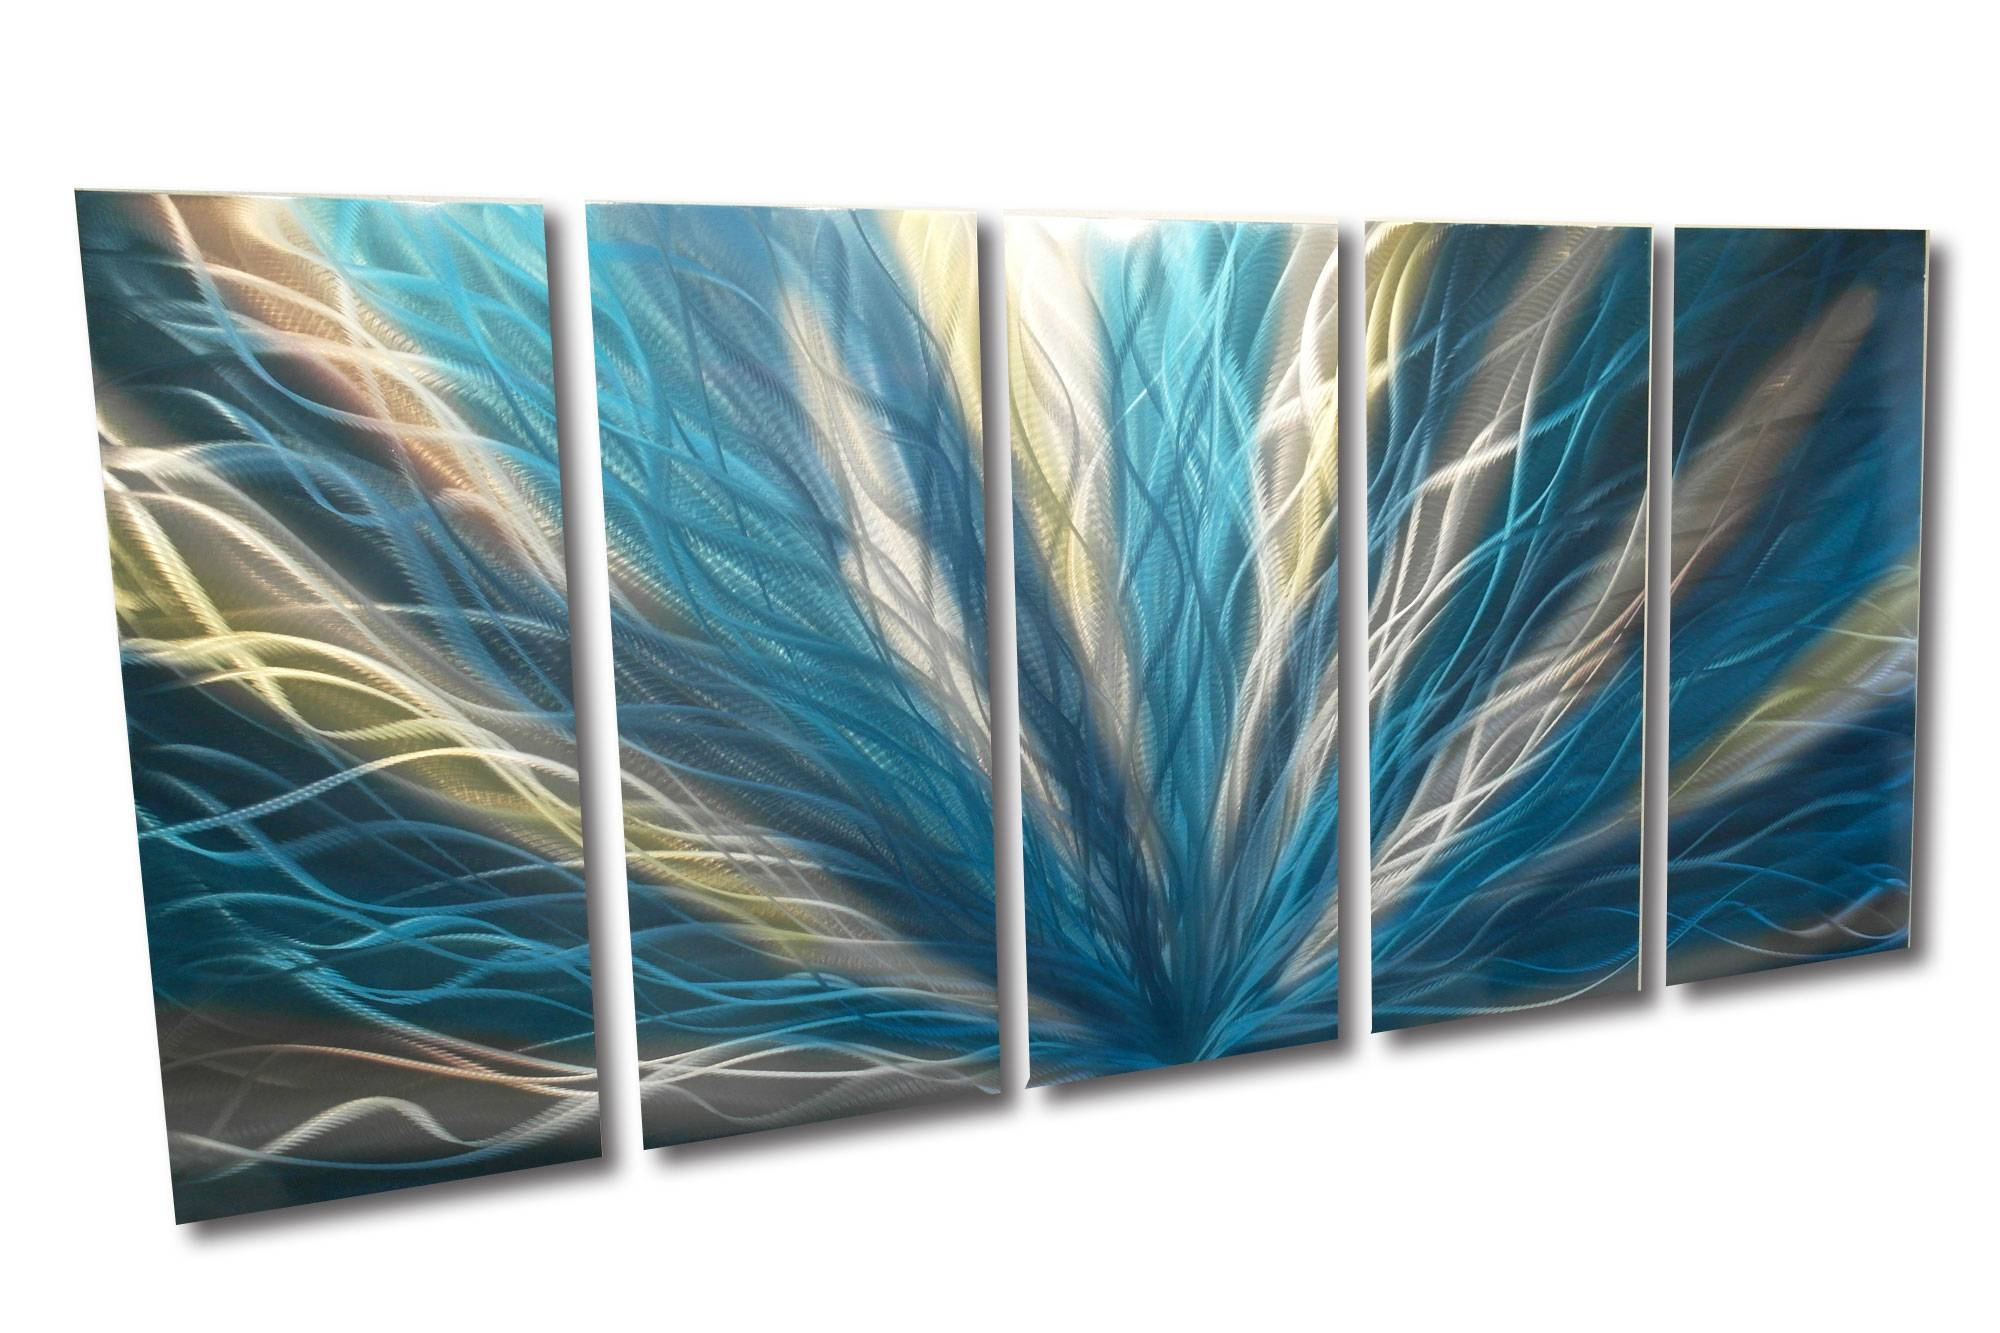 Radiance Teal 36X79 – Metal Wall Art Abstract Sculpture Modern Throughout Most Current Teal Metal Wall Art (Gallery 4 of 20)